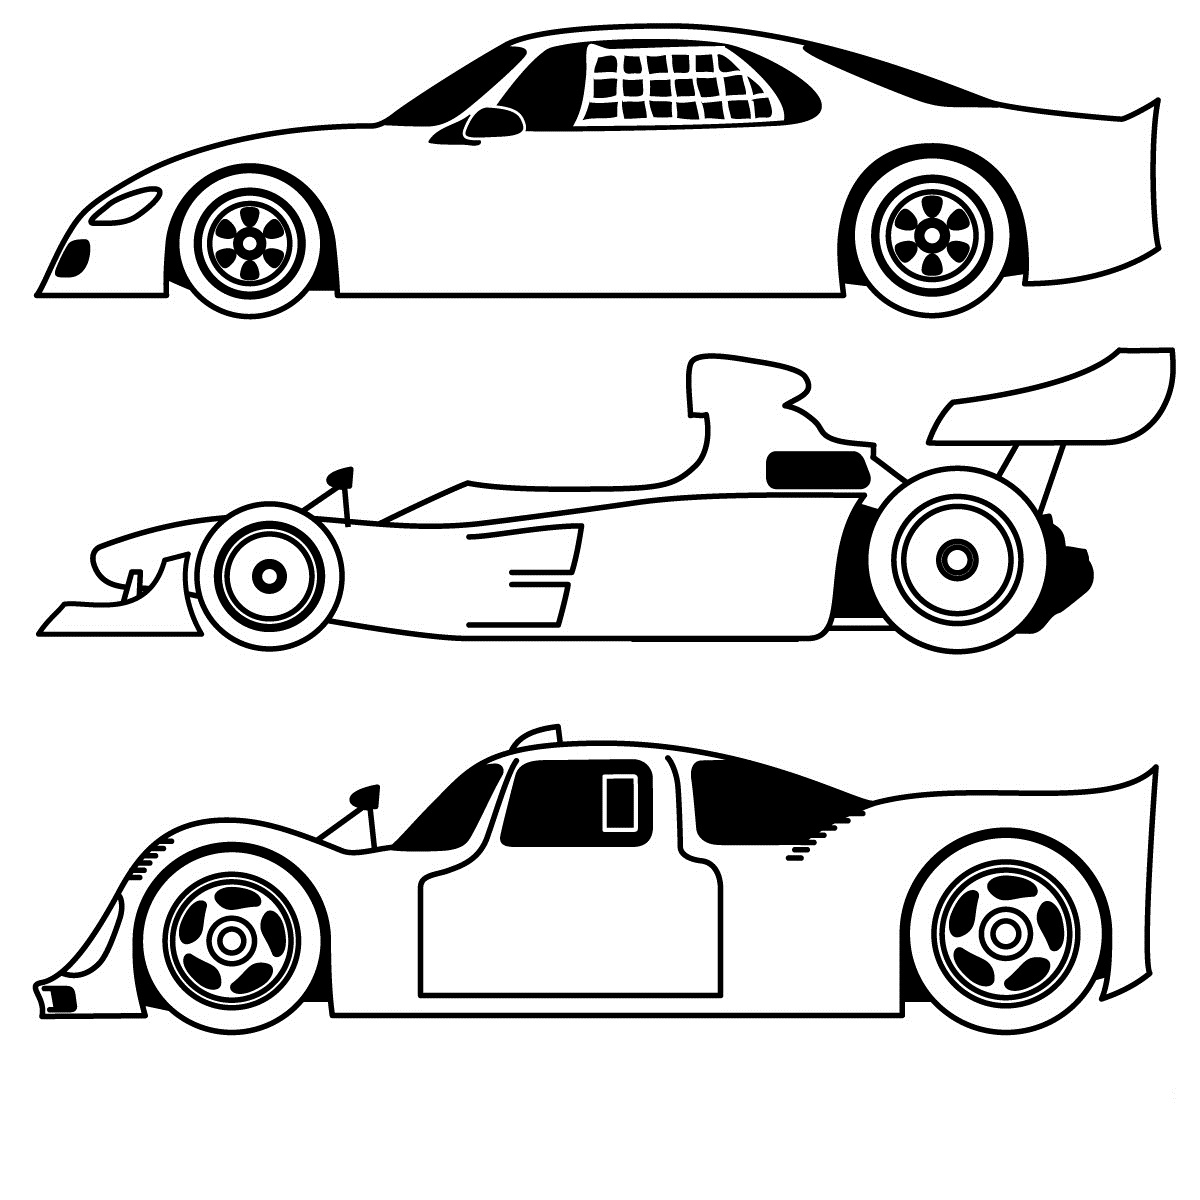 little cars coloring pages - photo#34